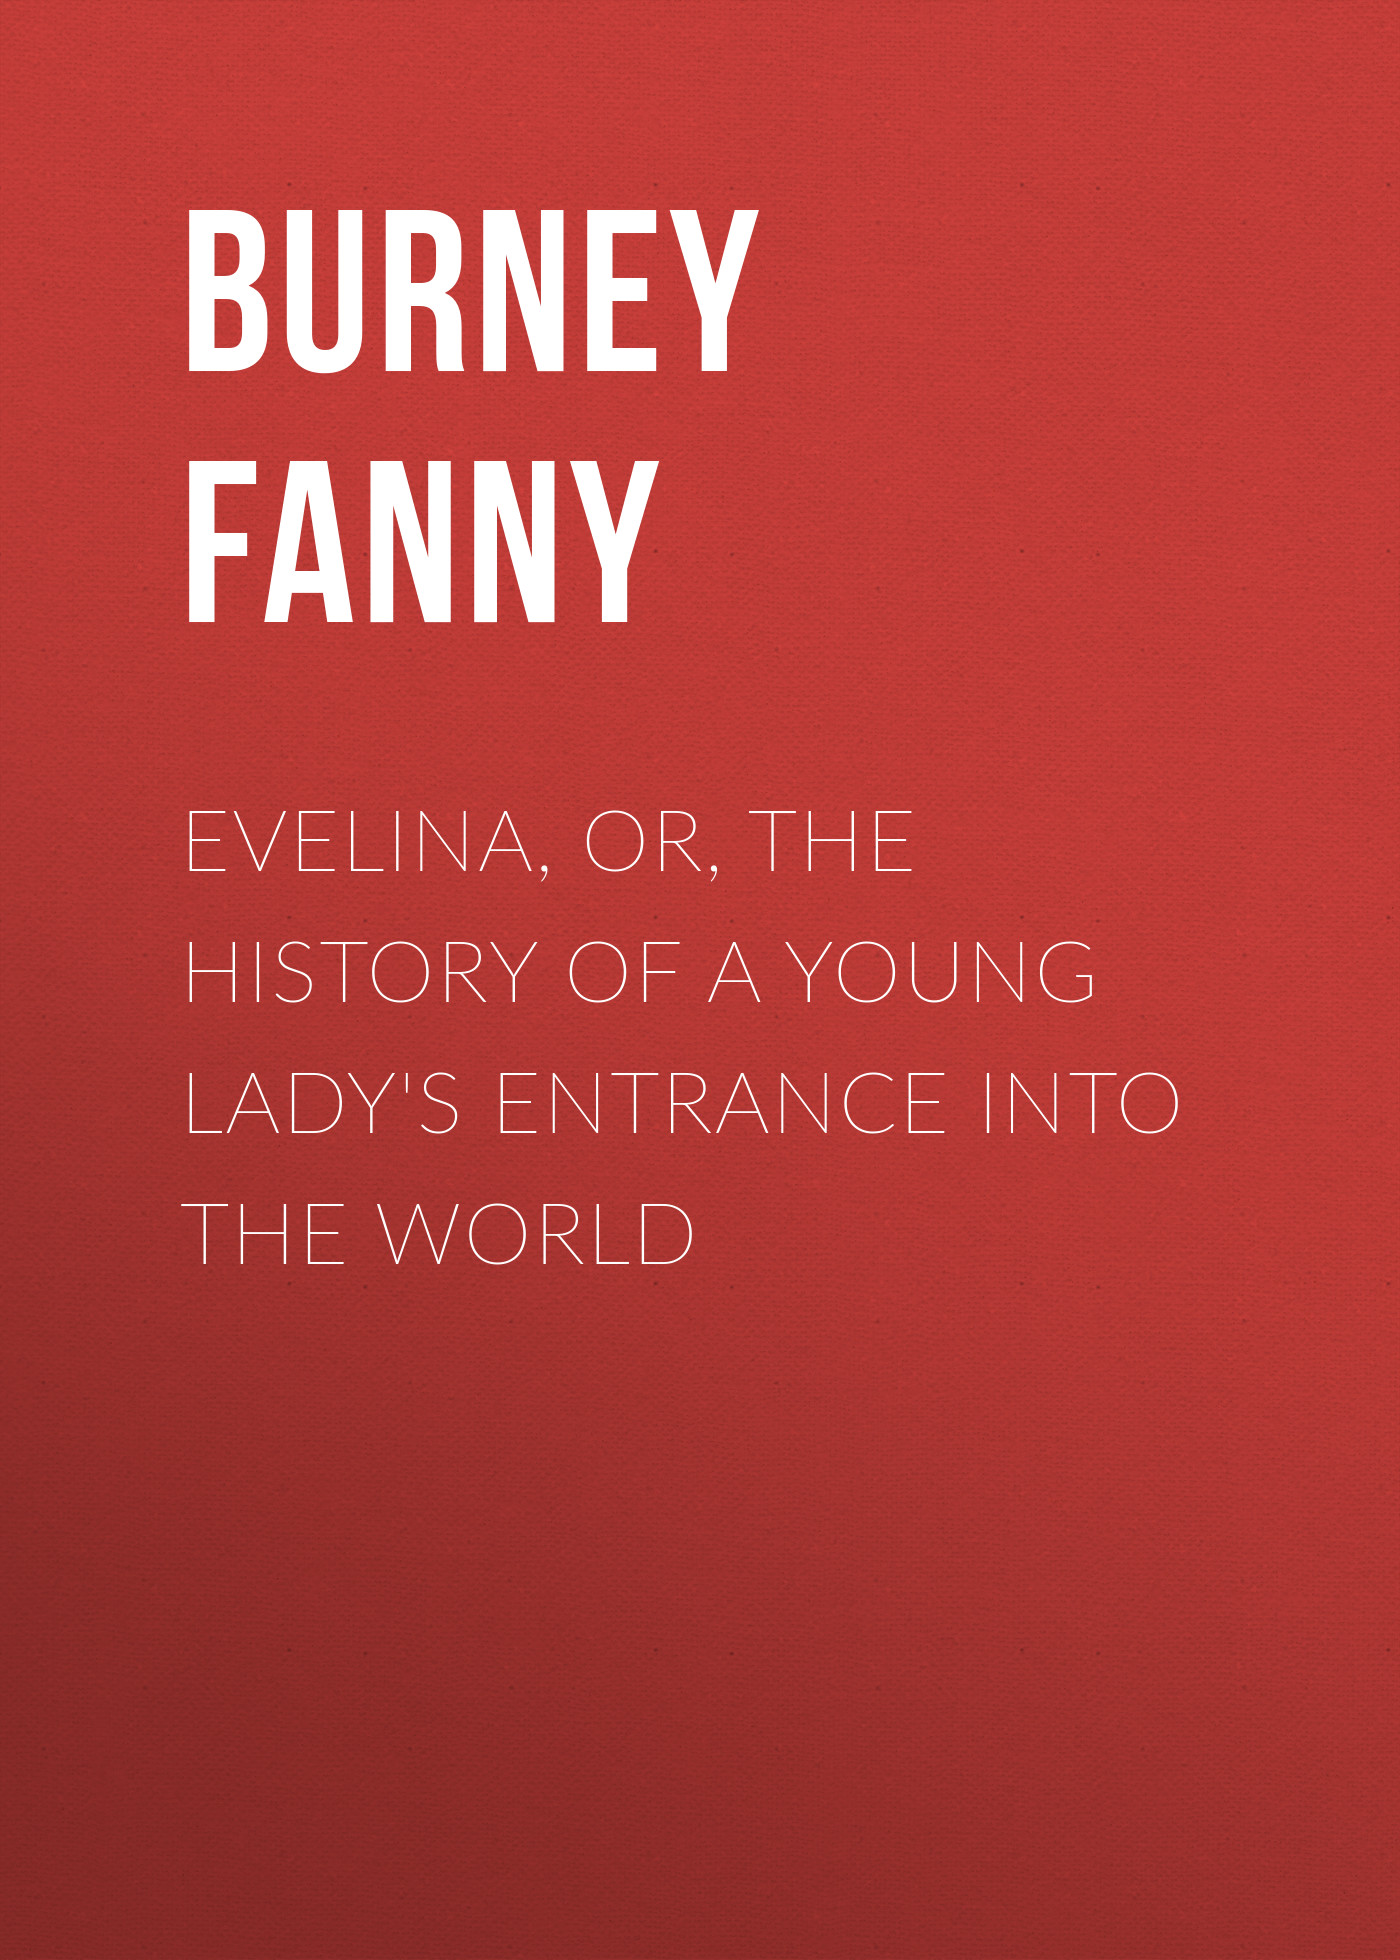 Burney Fanny Evelina, Or, the History of a Young Lady's Entrance into the World burney fanny the wanderer or female difficulties volume 5 of 5